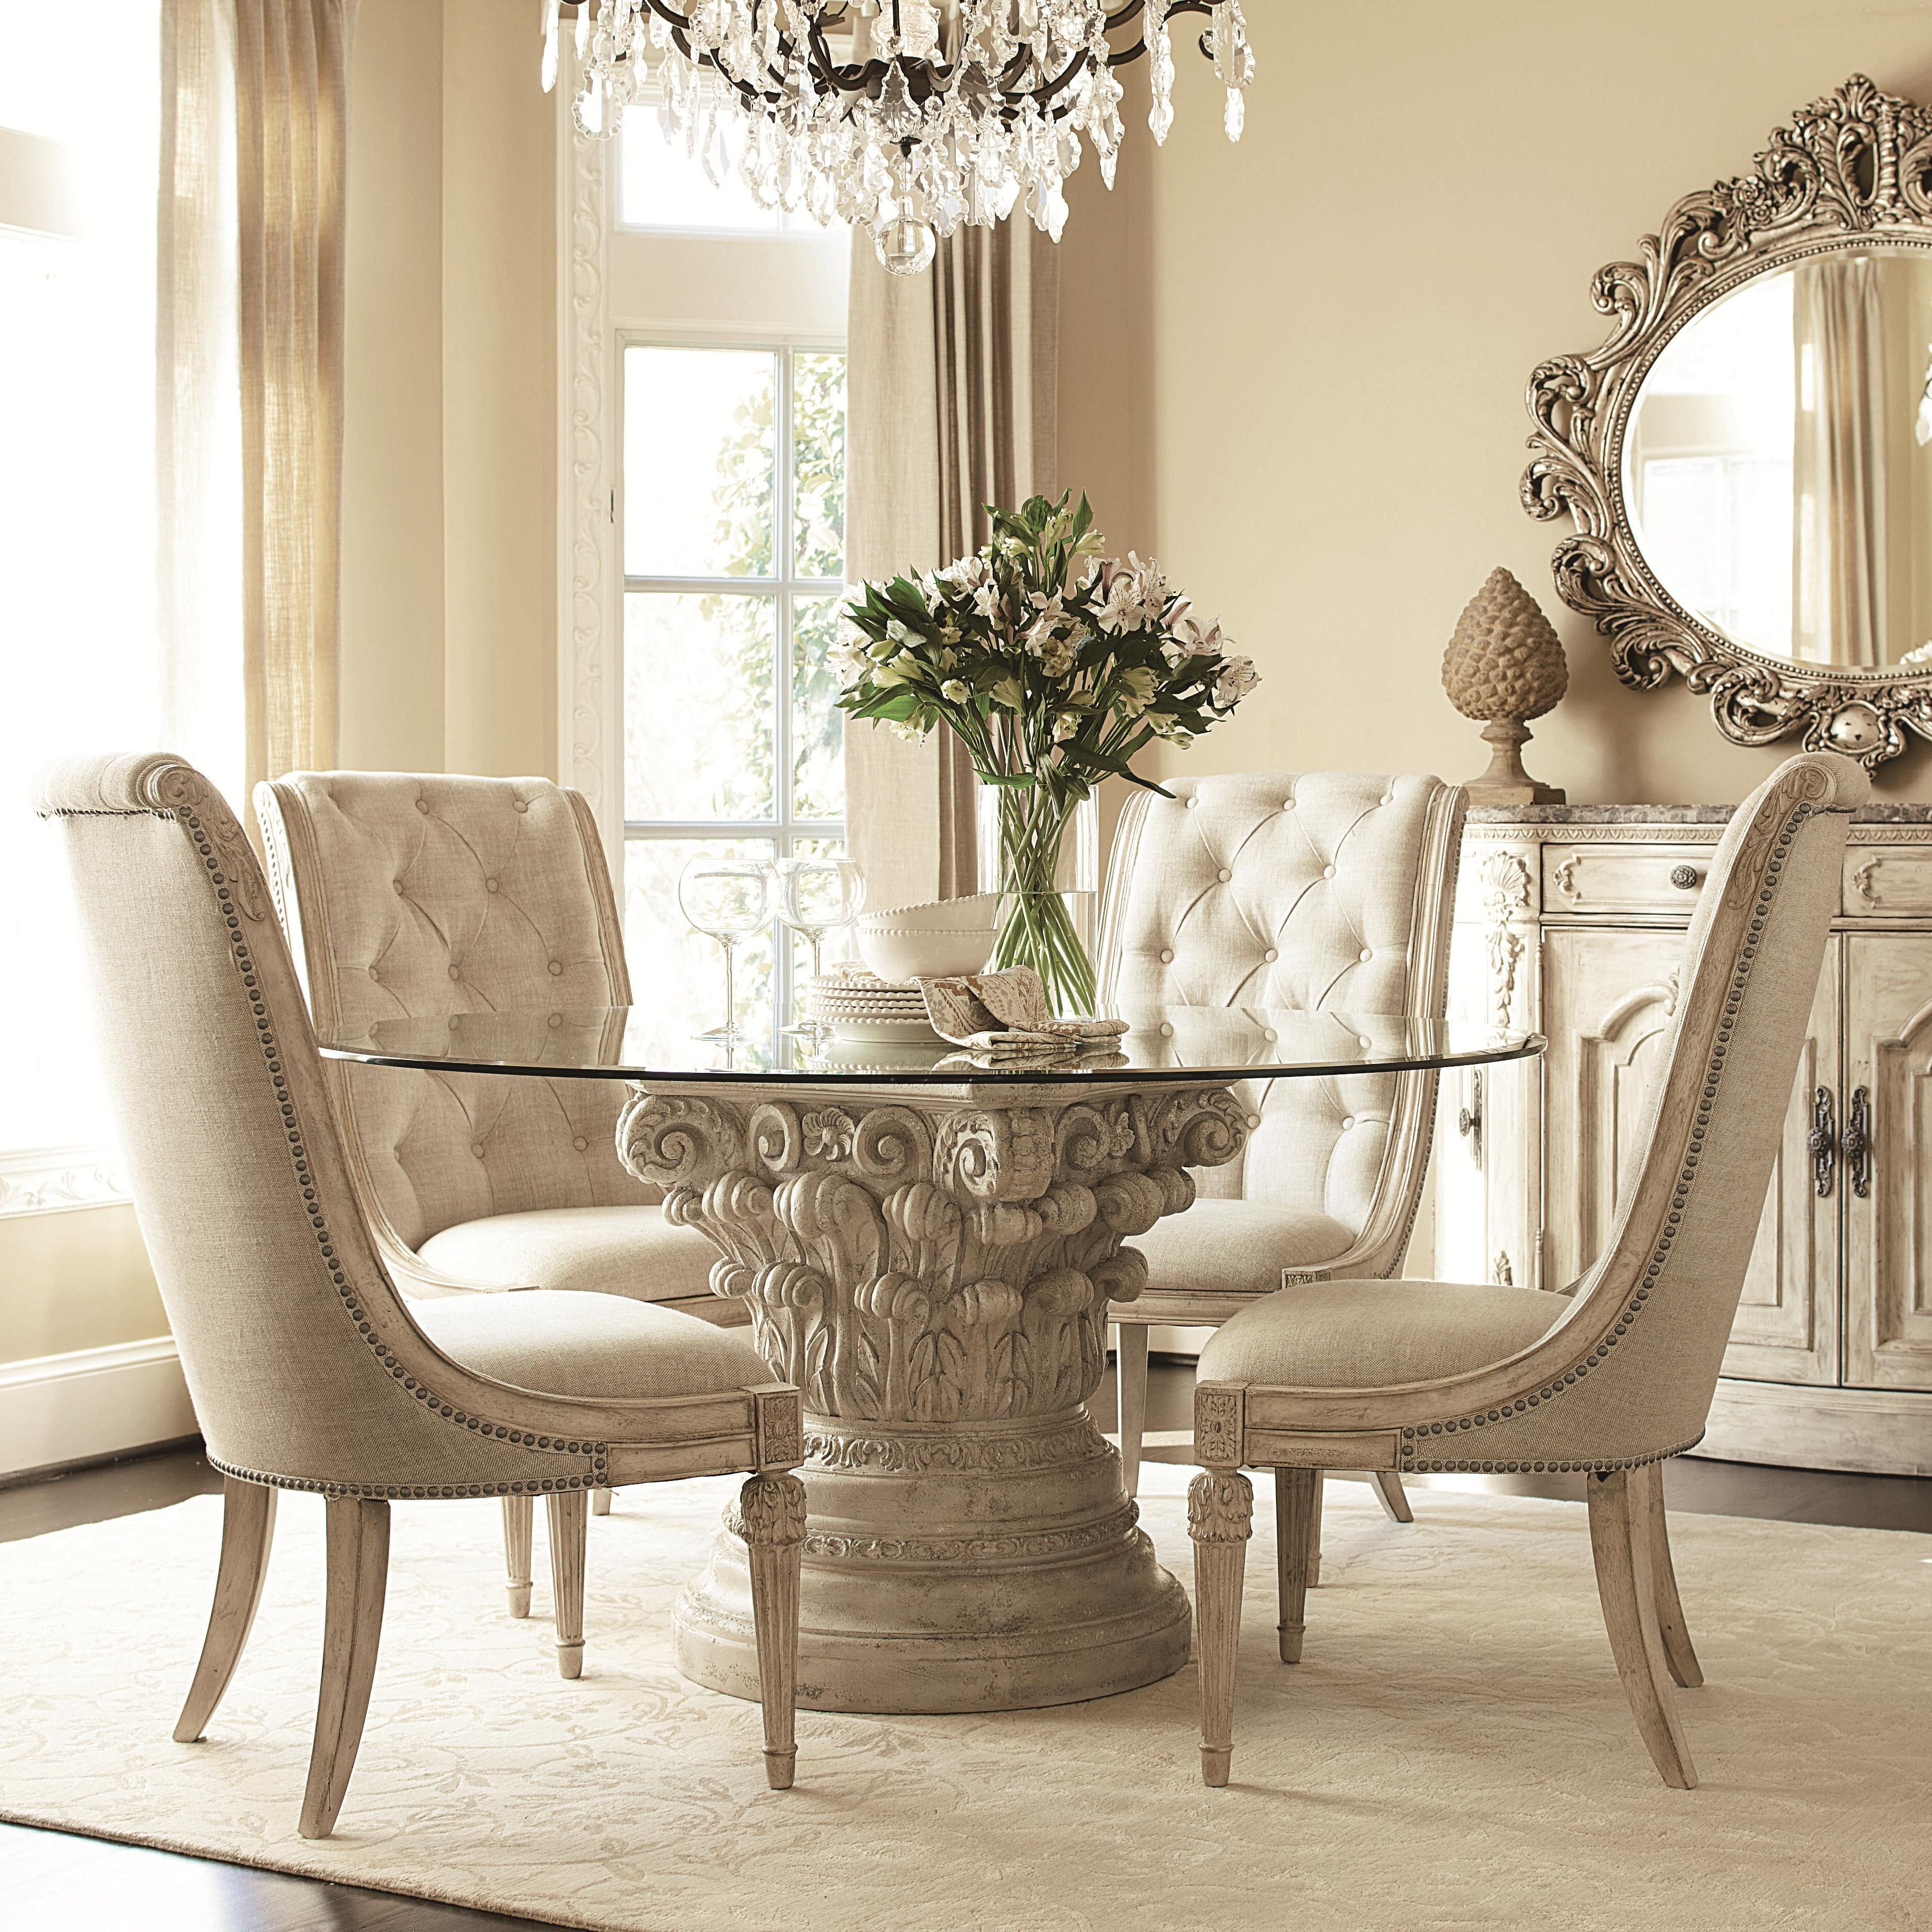 American Drew Jessica Mcclintock Home – The Boutique Collection 5 Regarding Latest Caira 7 Piece Rectangular Dining Sets With Diamond Back Side Chairs (View 18 of 25)